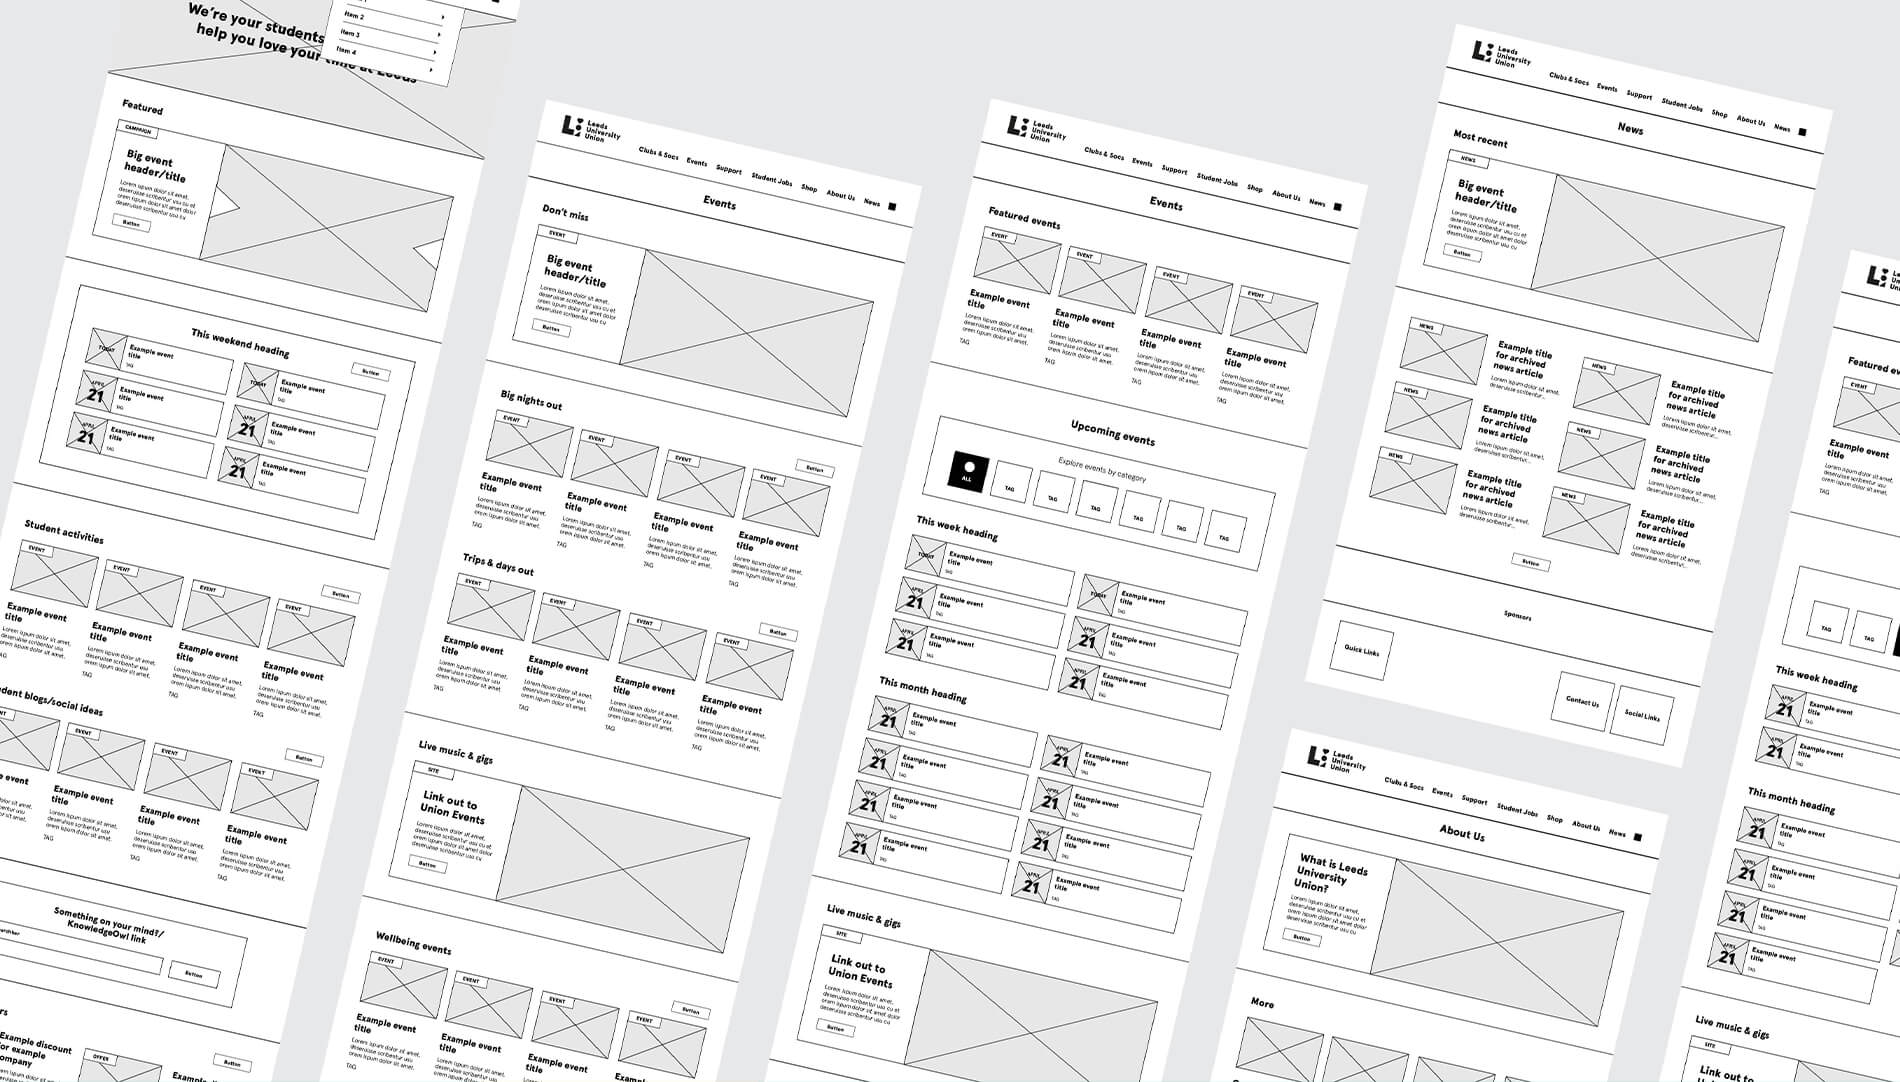 UX/UI wireframe designs for Leeds University Union's website design